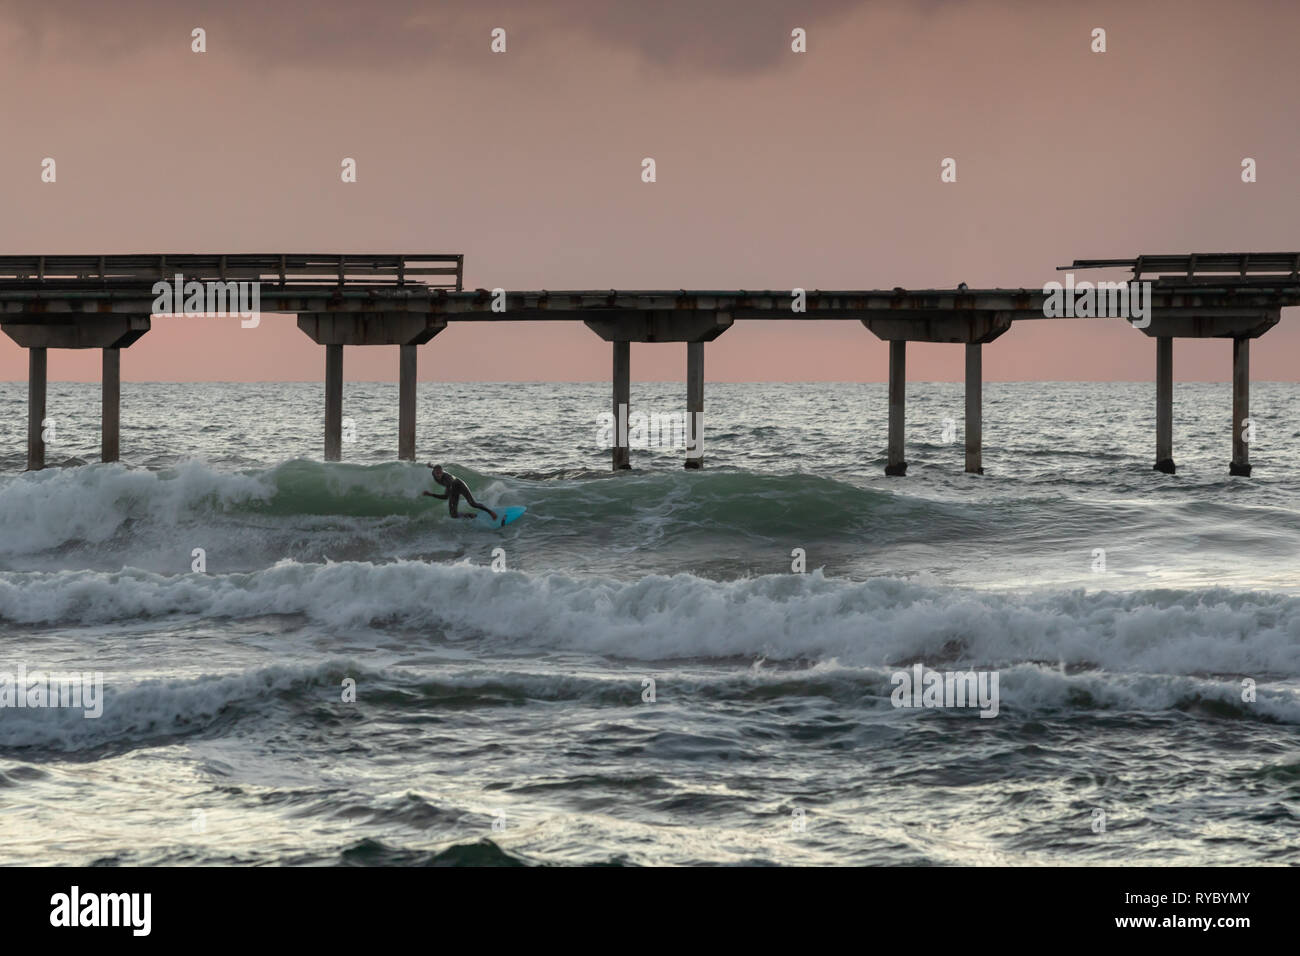 California Surfer san Diego - Stock Image